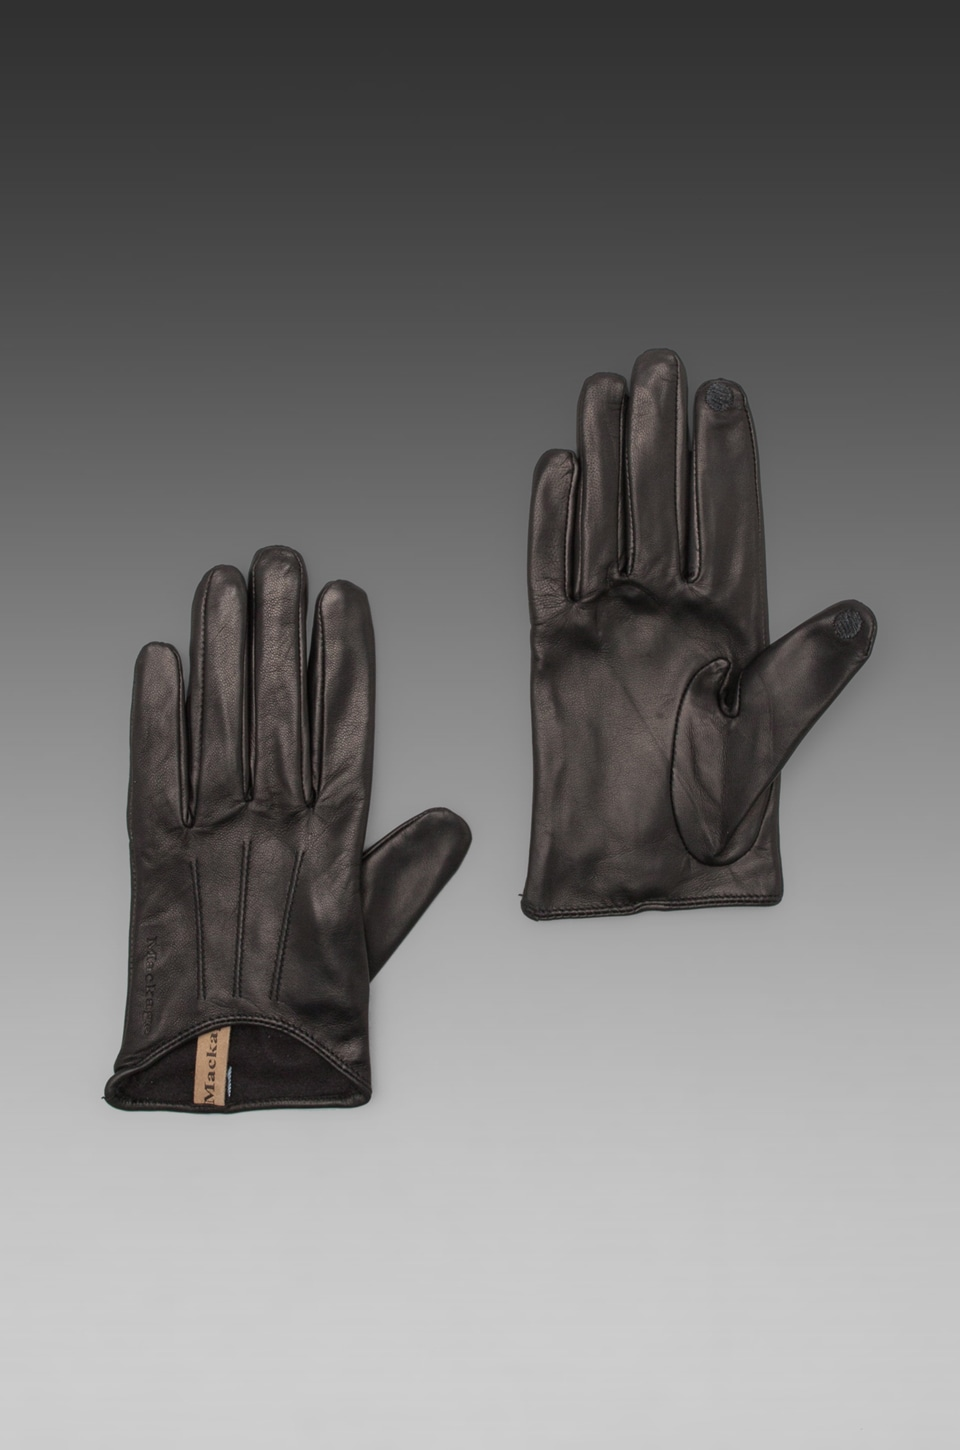 Mackage Alisee Ladies Leather Gloves in Black